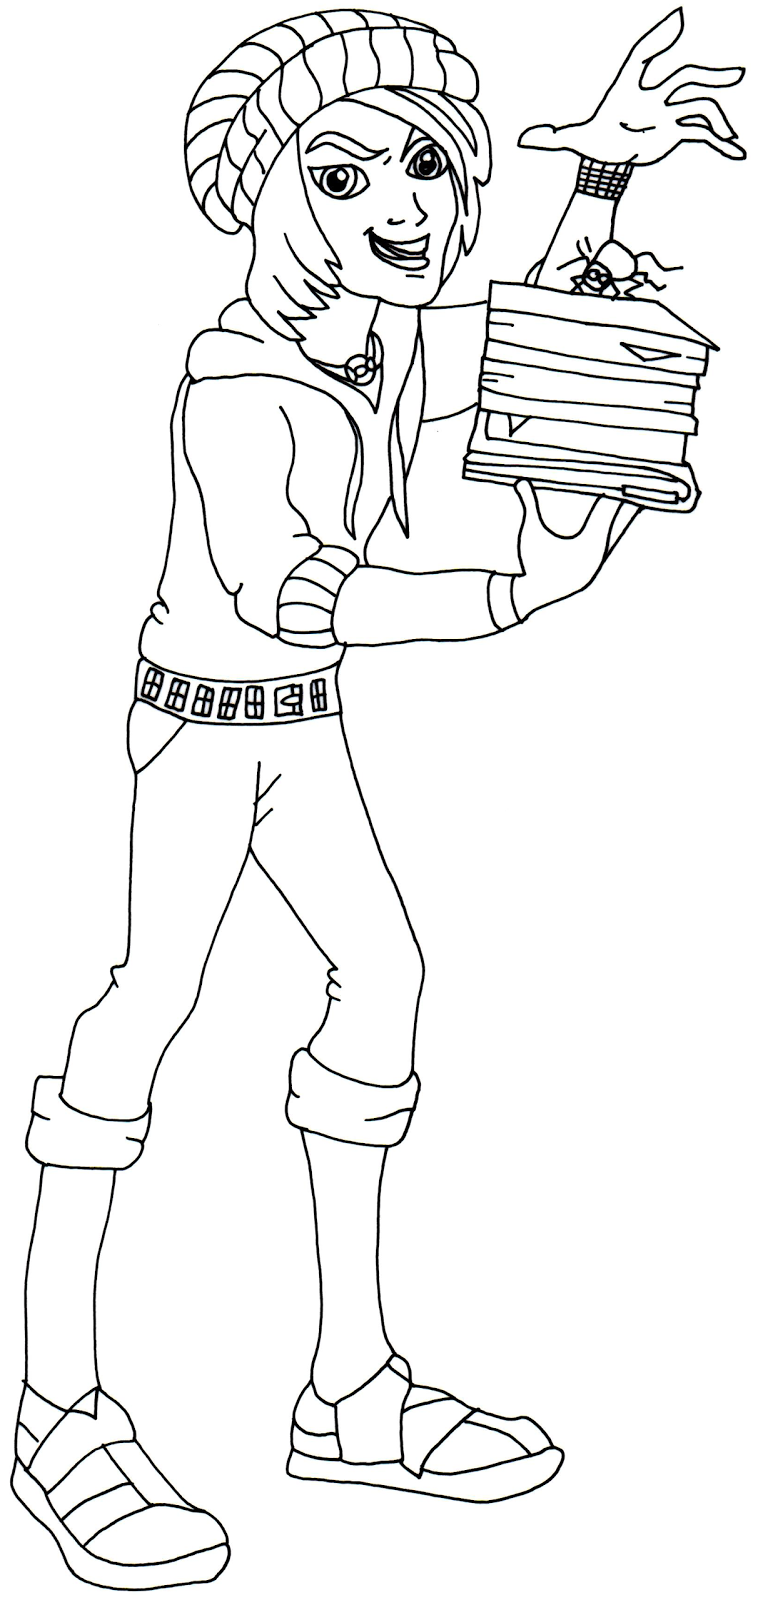 Free Printable Monster High Coloring Pages: Invisi Billy Scaremester ...